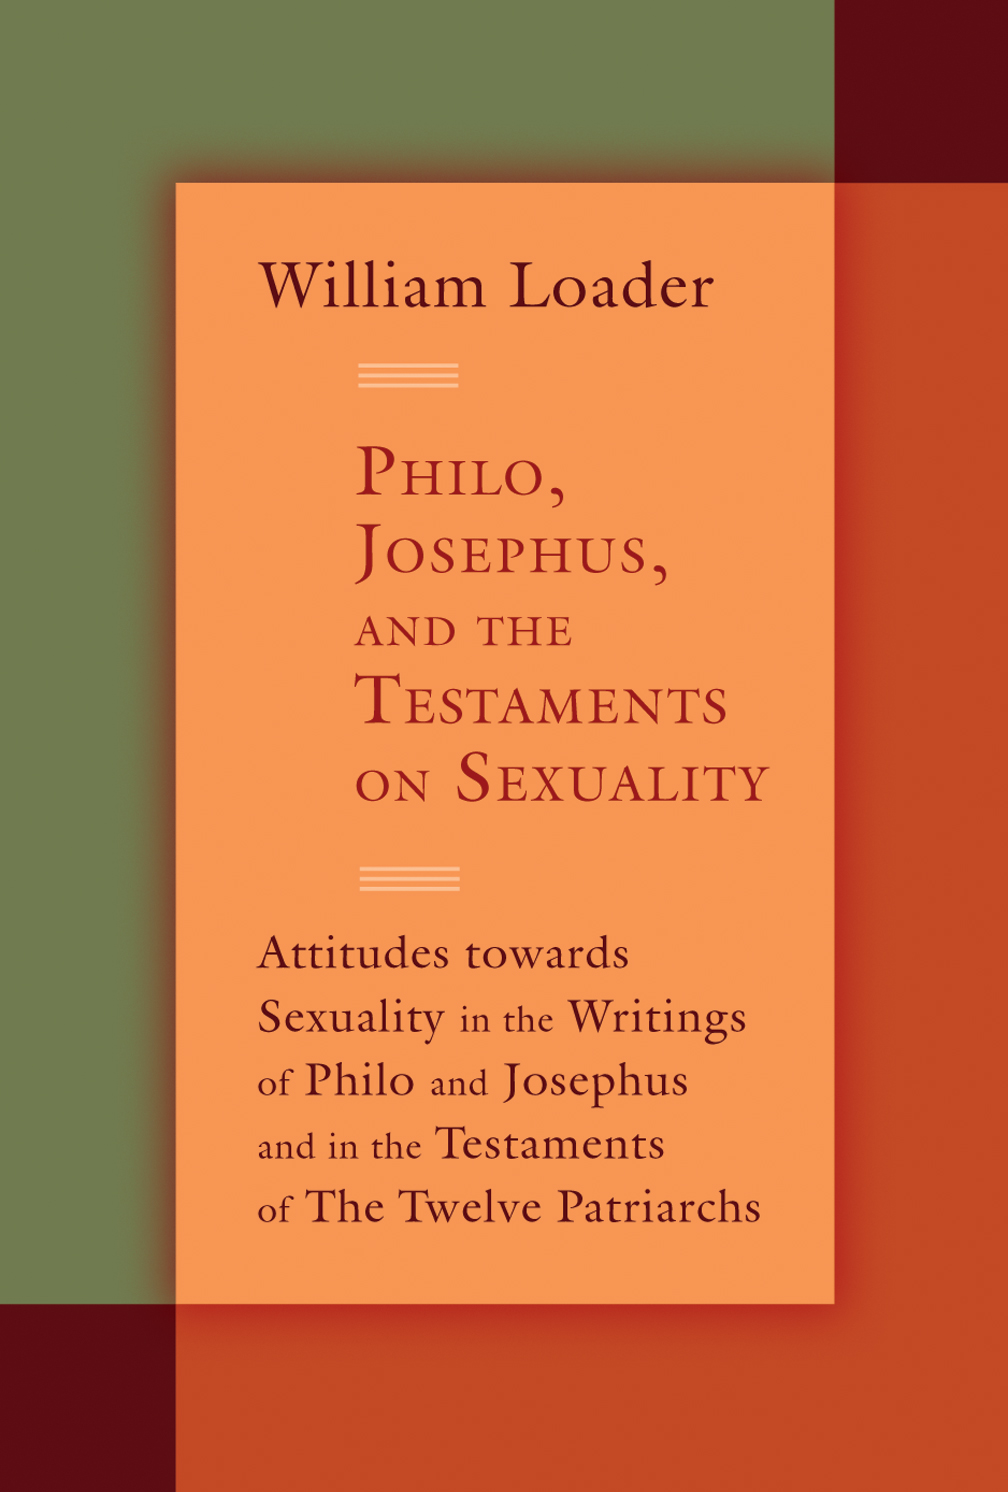 Philo, Josephus, and the Testaments on Sexuality